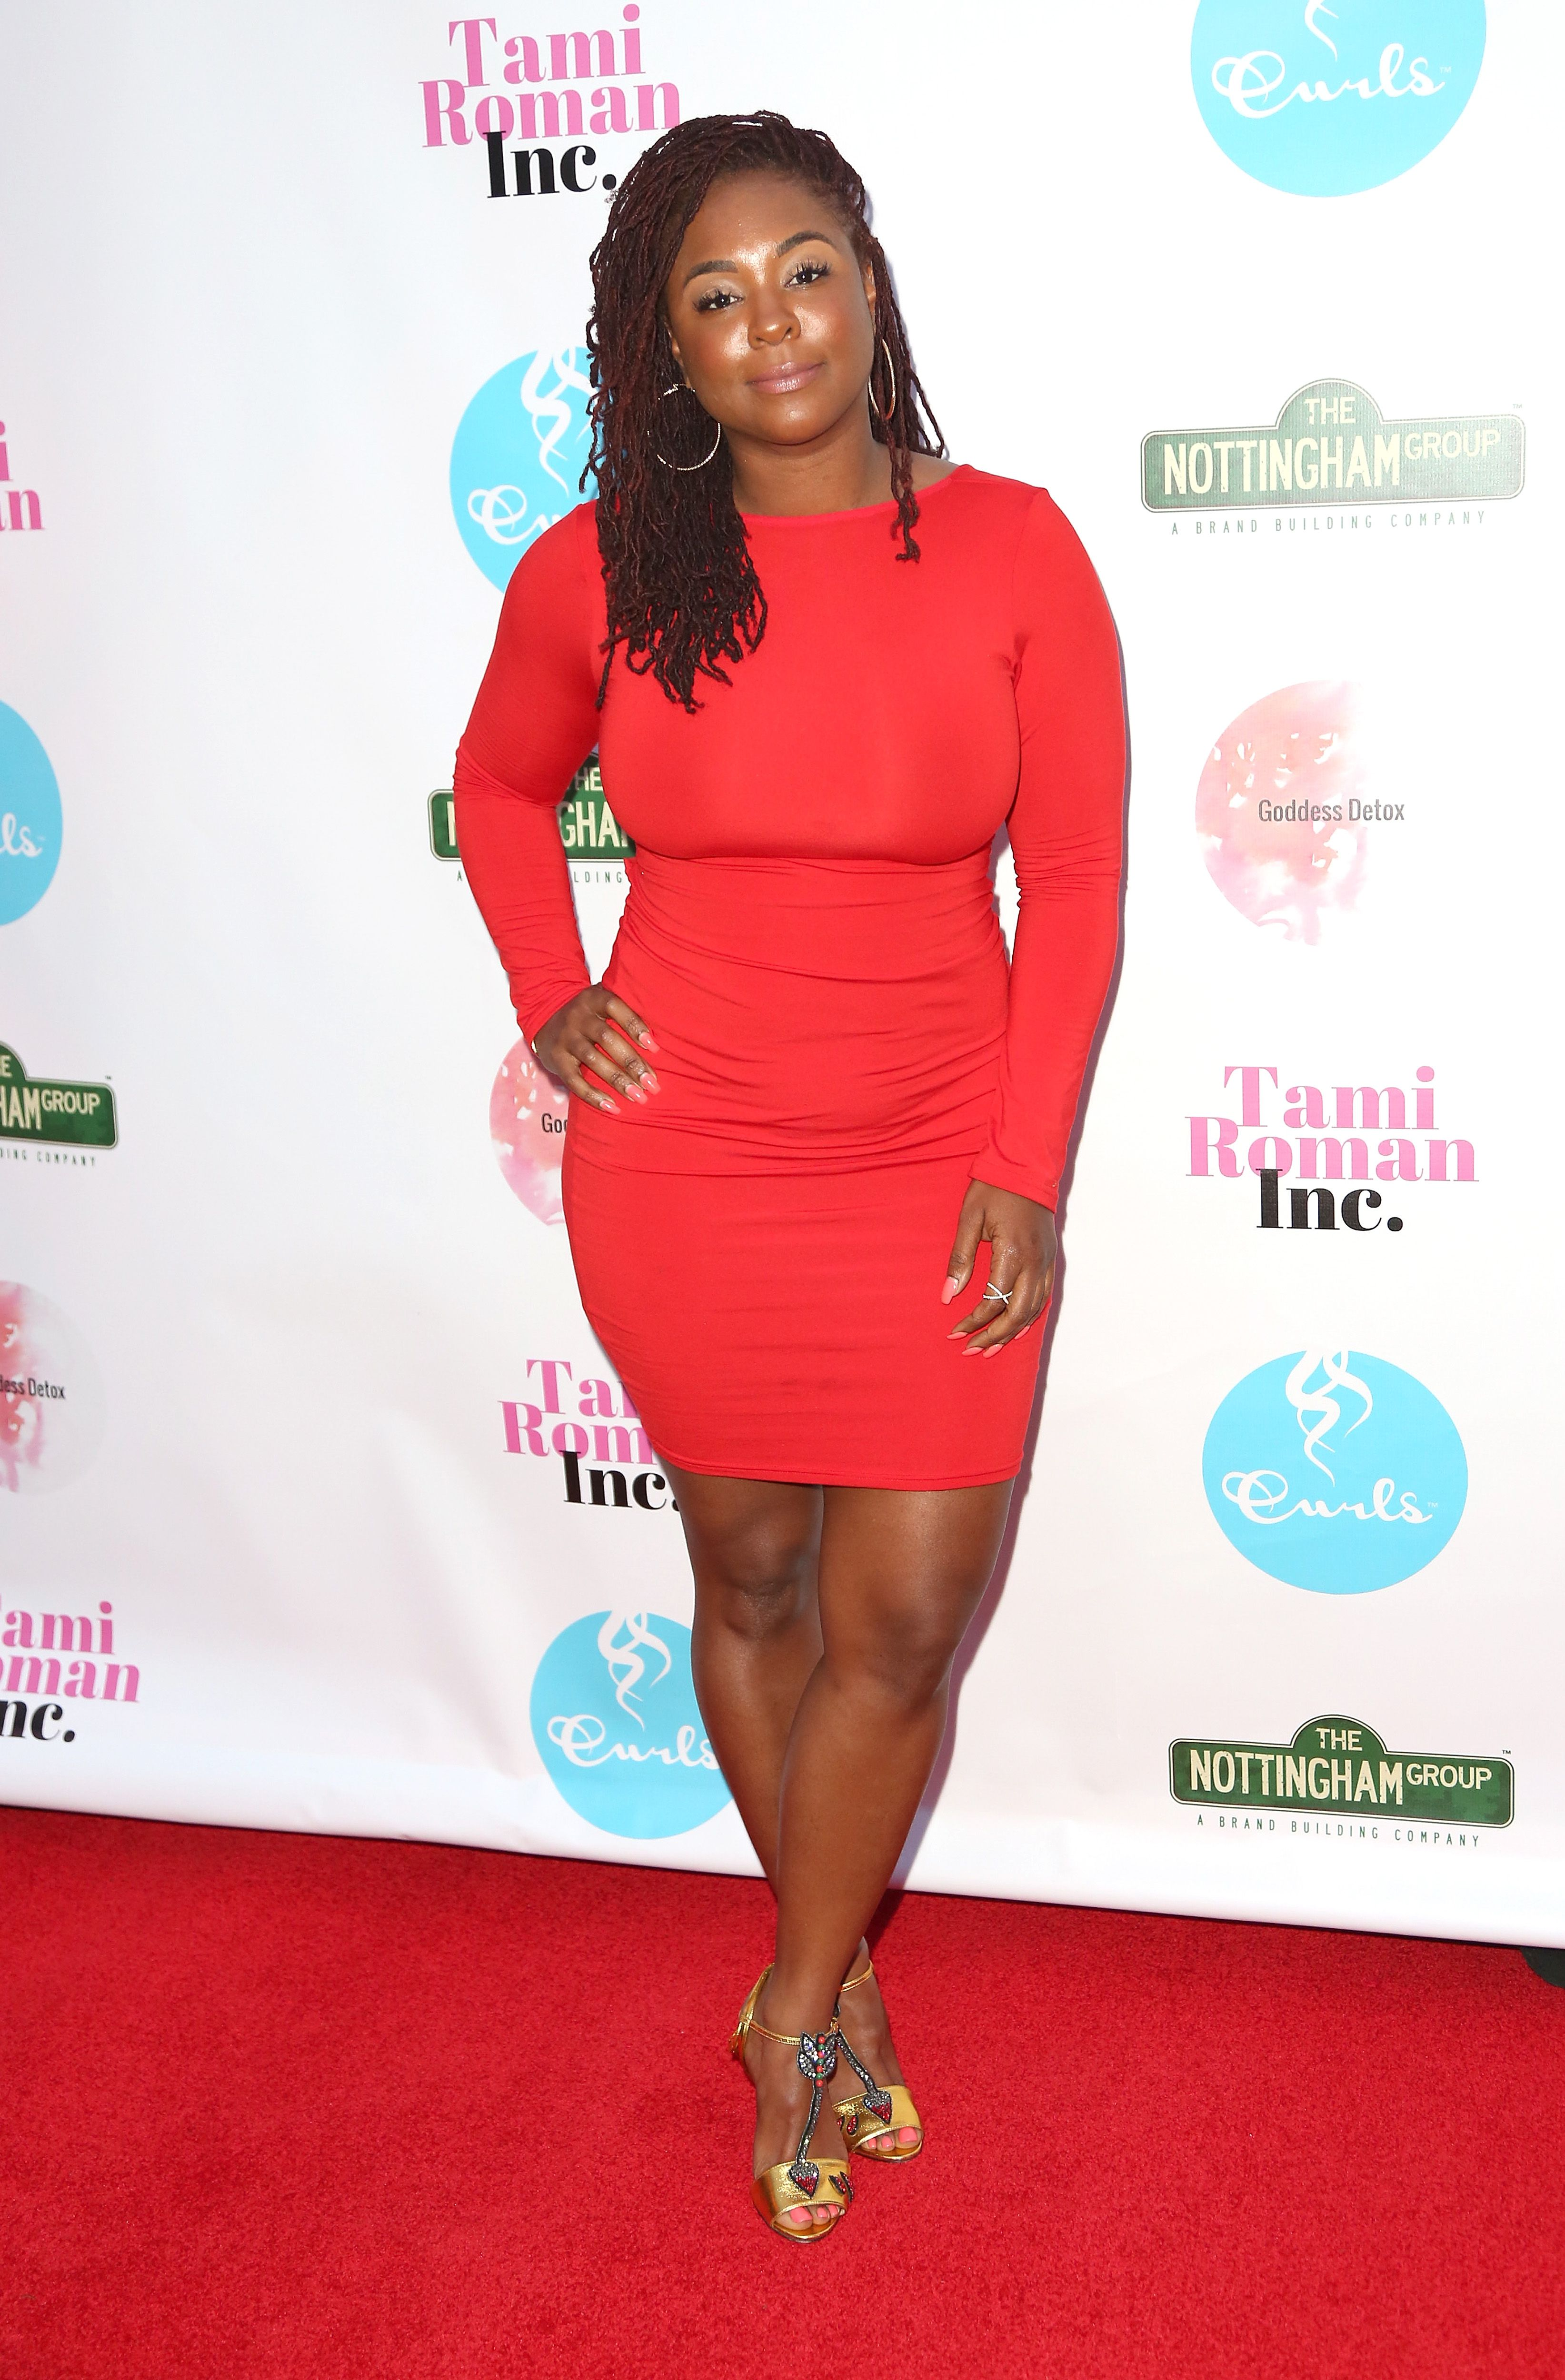 Torrei Hart attends the Women of Influence Dinner at Xen Lounge on May 15, 2017 in Studio City, California. | Photo: Getty Images